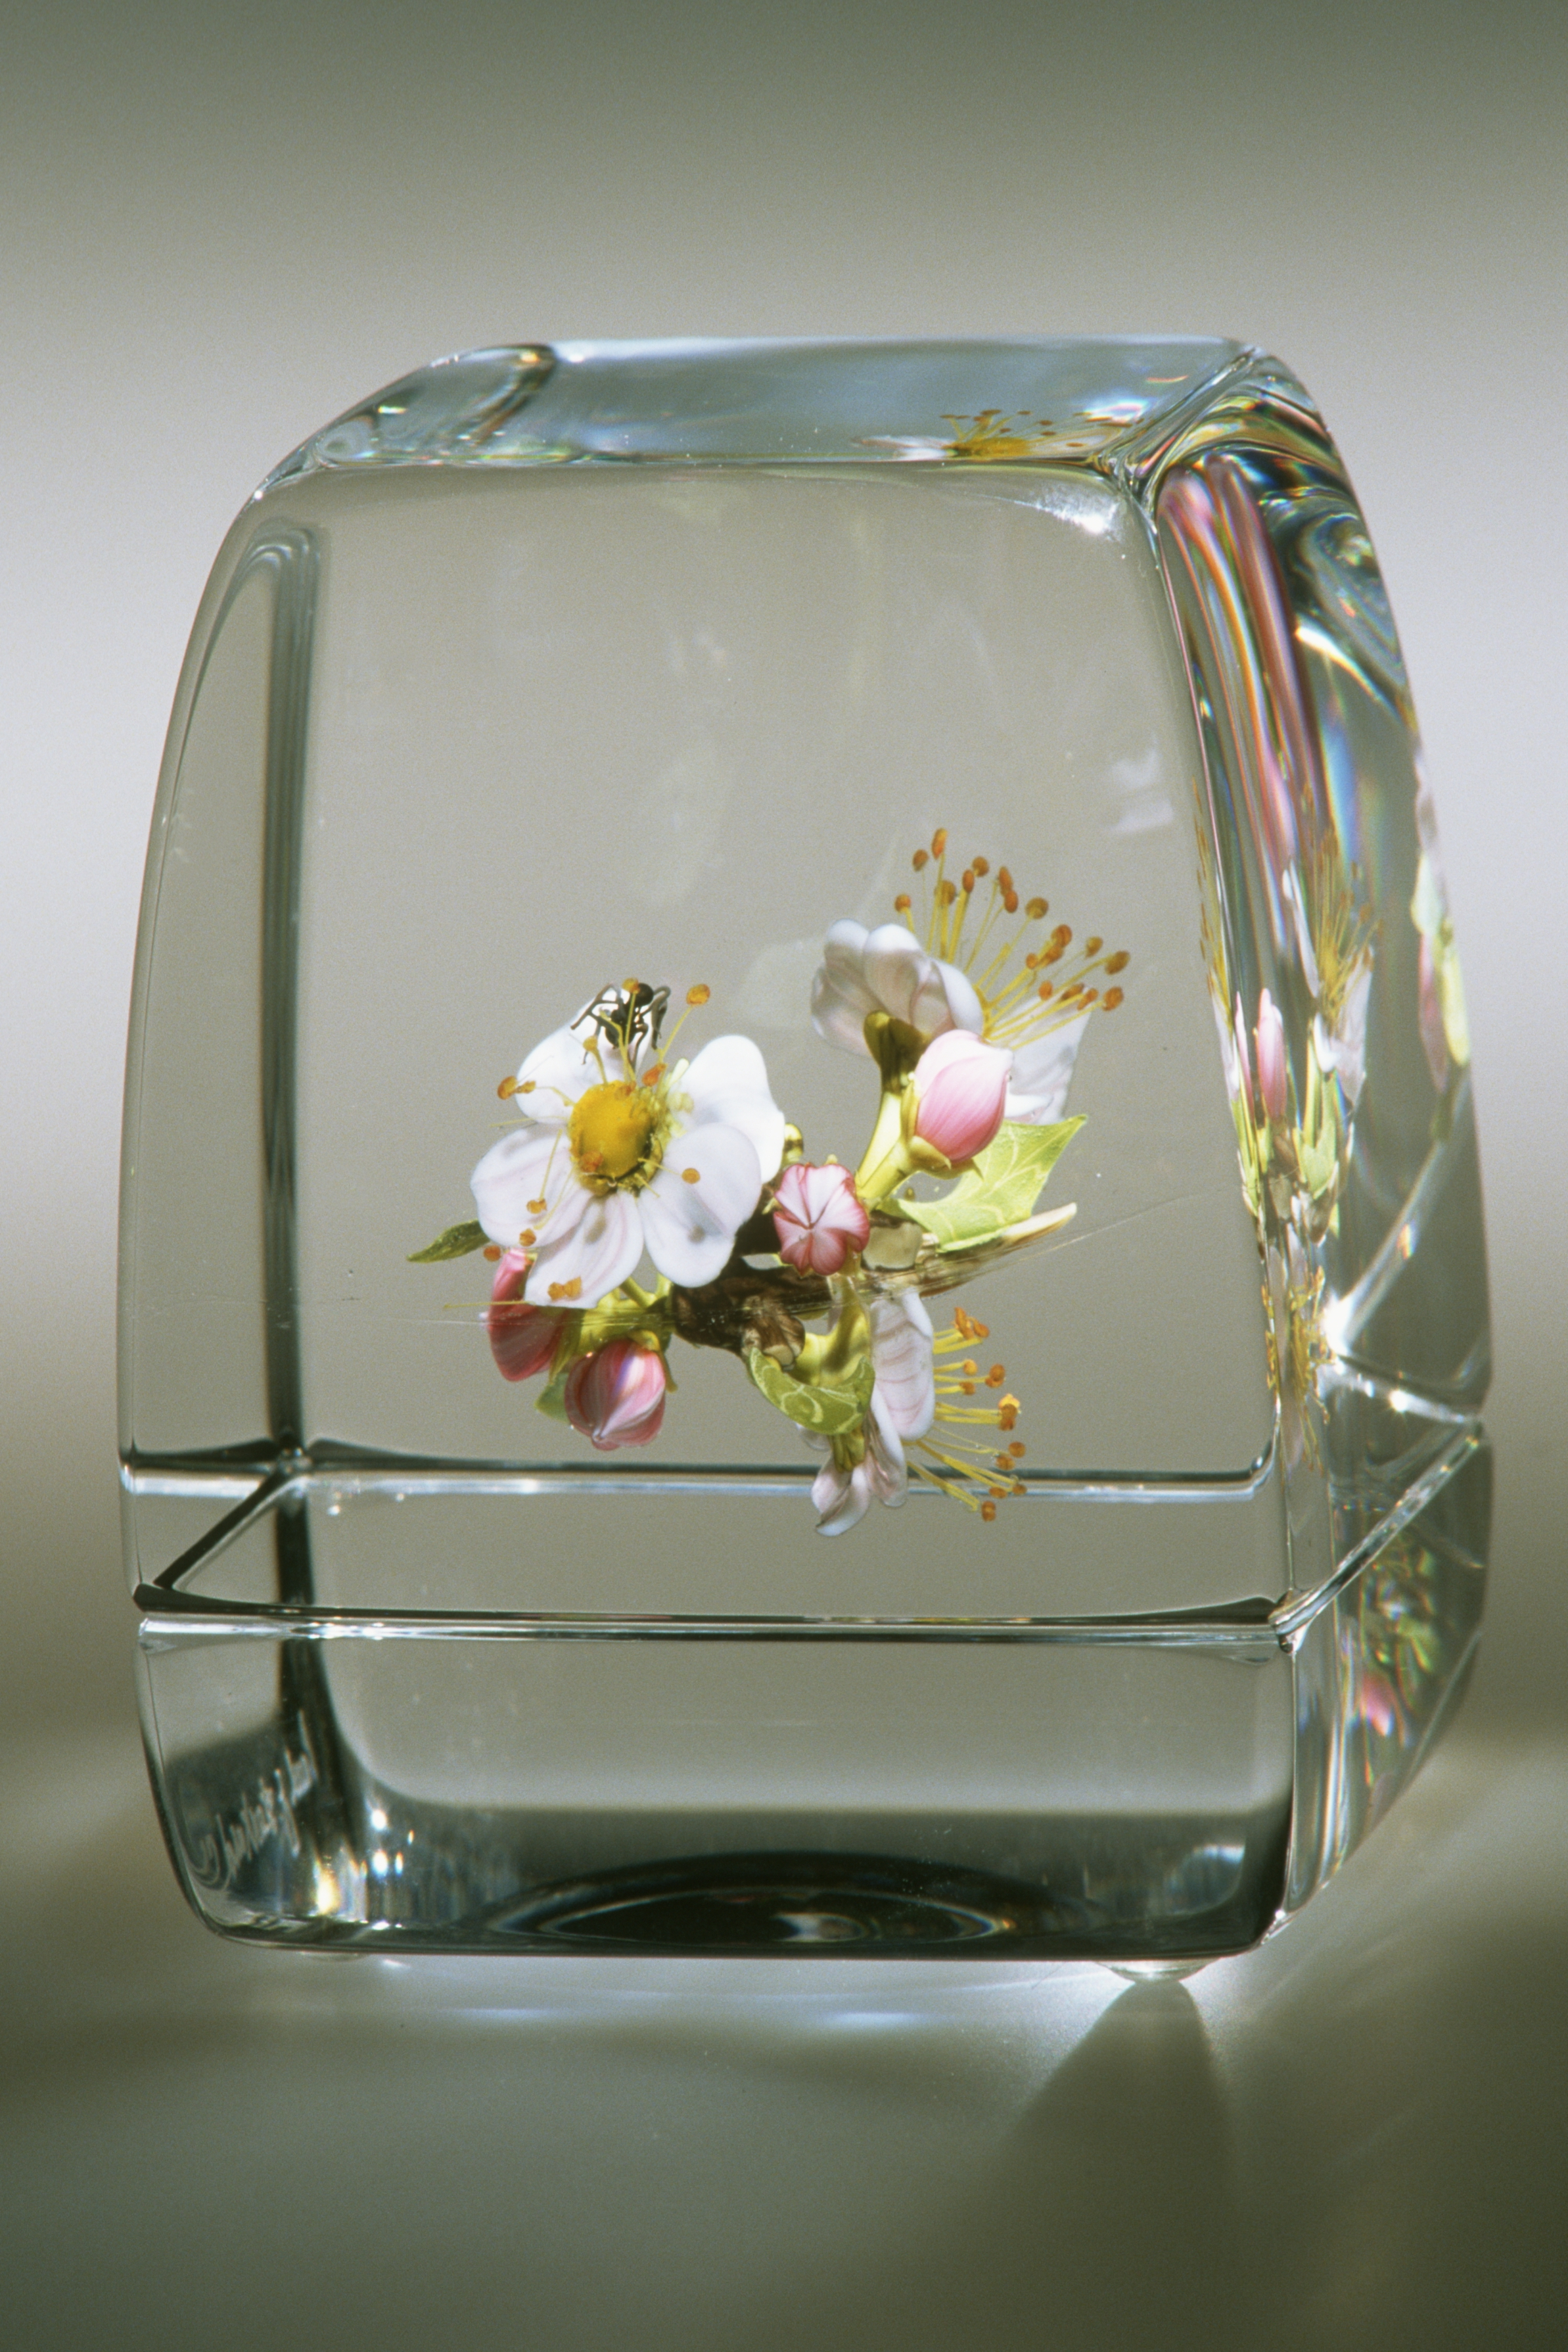 2003; Apple Blossom Cube; H. 3.0 inches